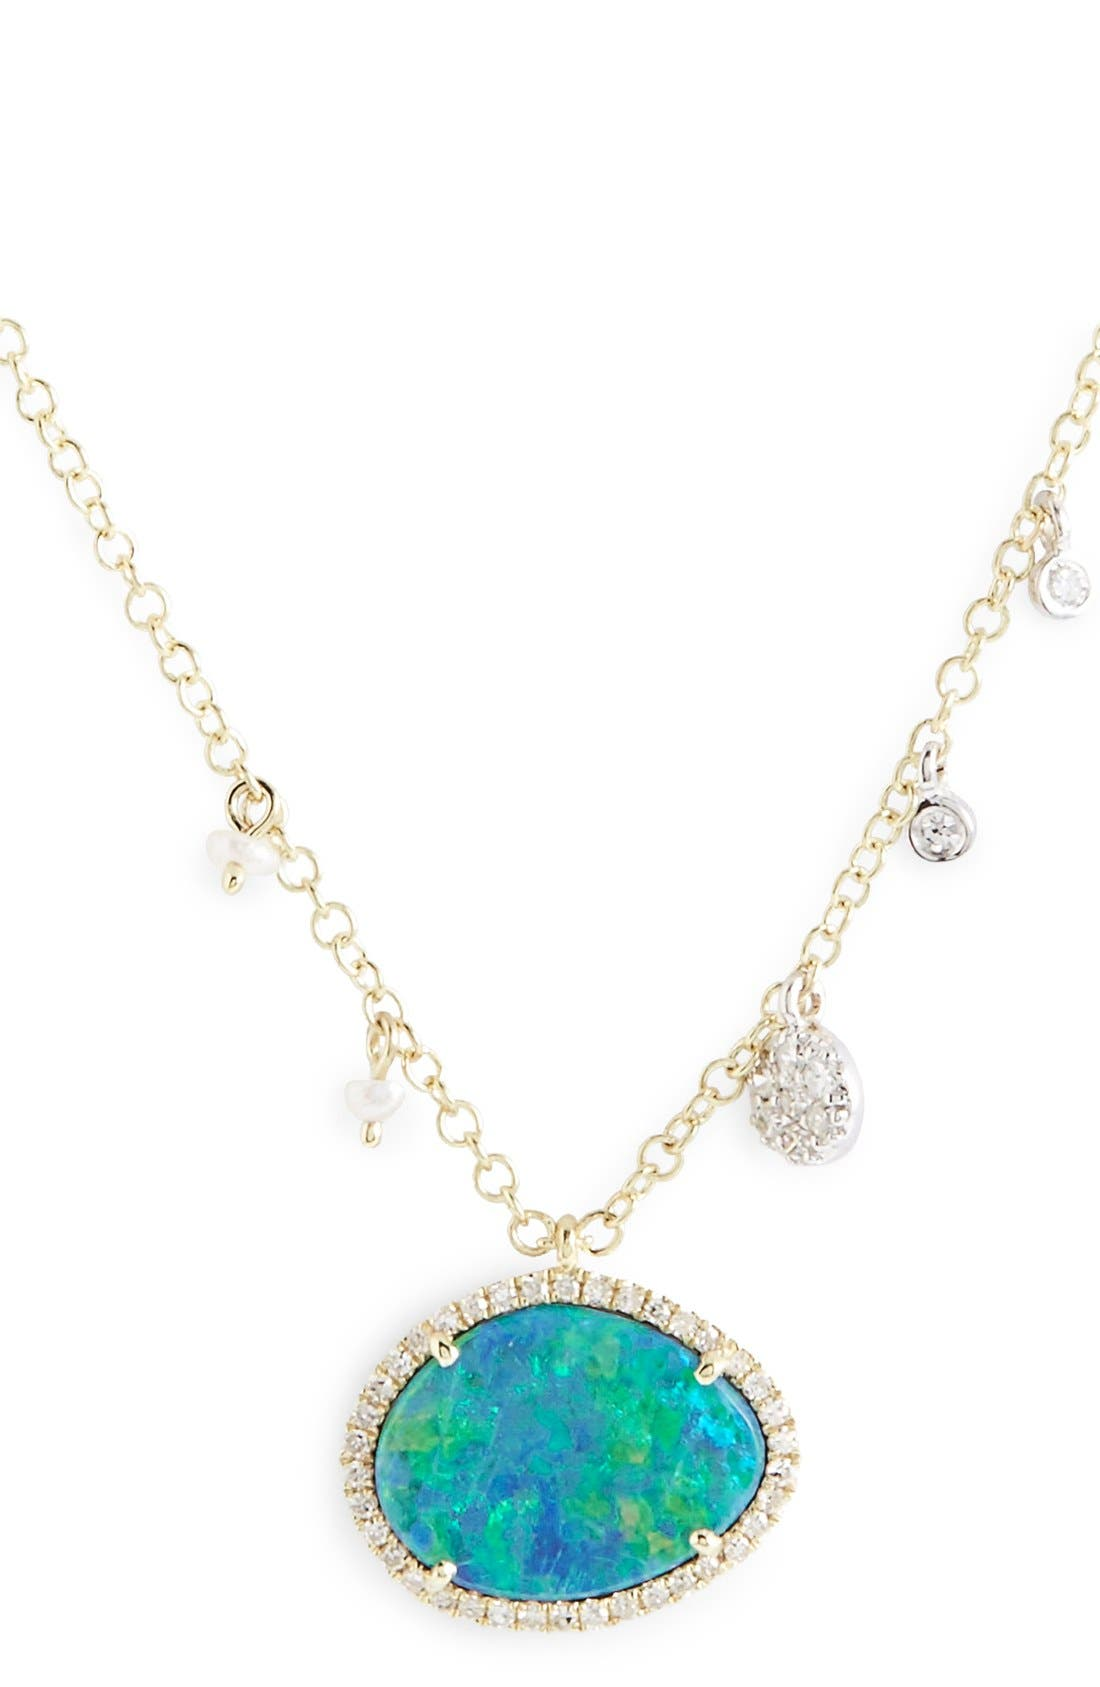 Stone Pendant Necklace,                             Main thumbnail 1, color,                             YELLOW GOLD/ BLUE OPAL